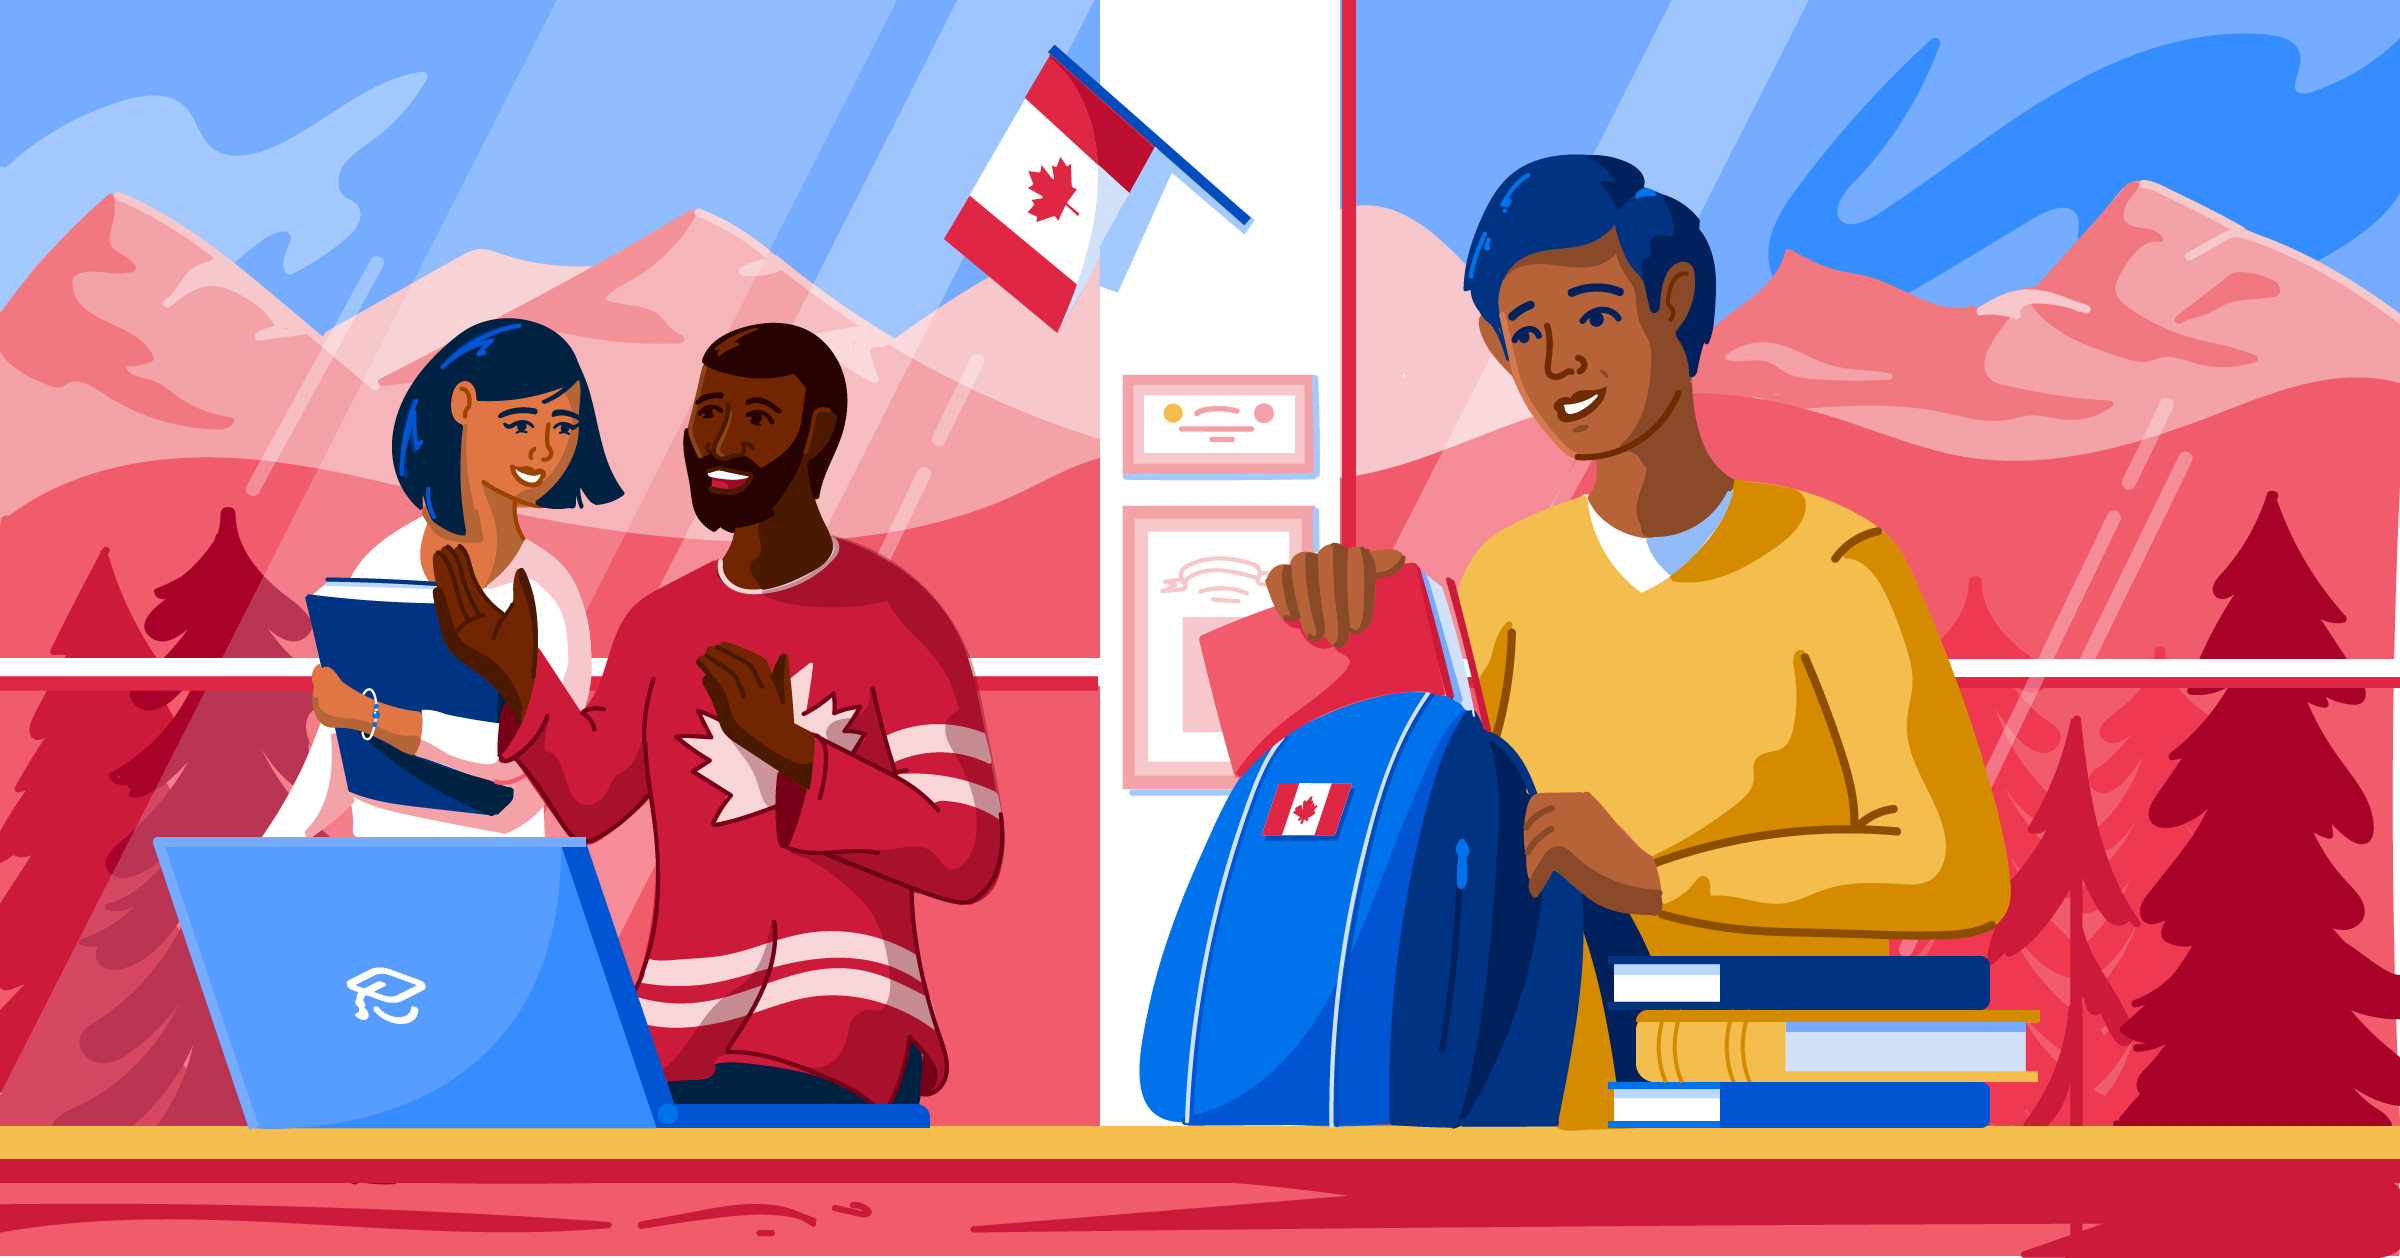 Illustration of students in Canada